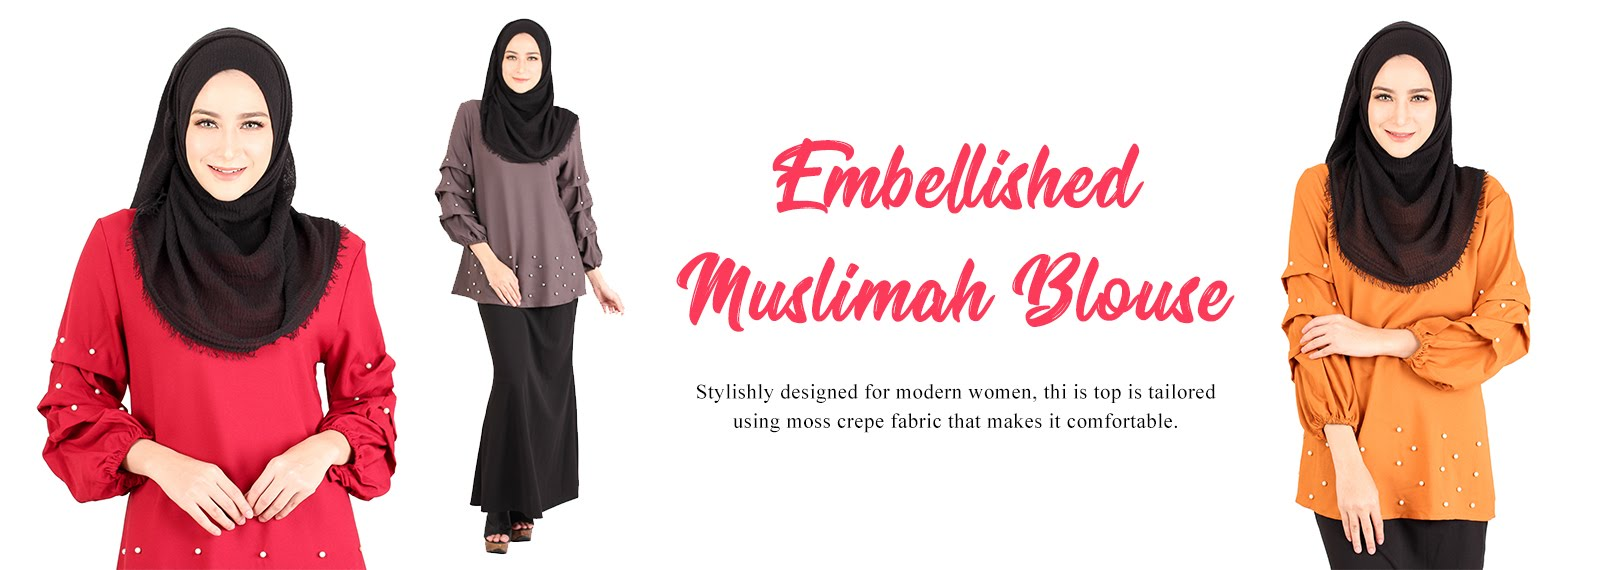 Embellished Muslimah Blouse  M14229  4d5a76a05b